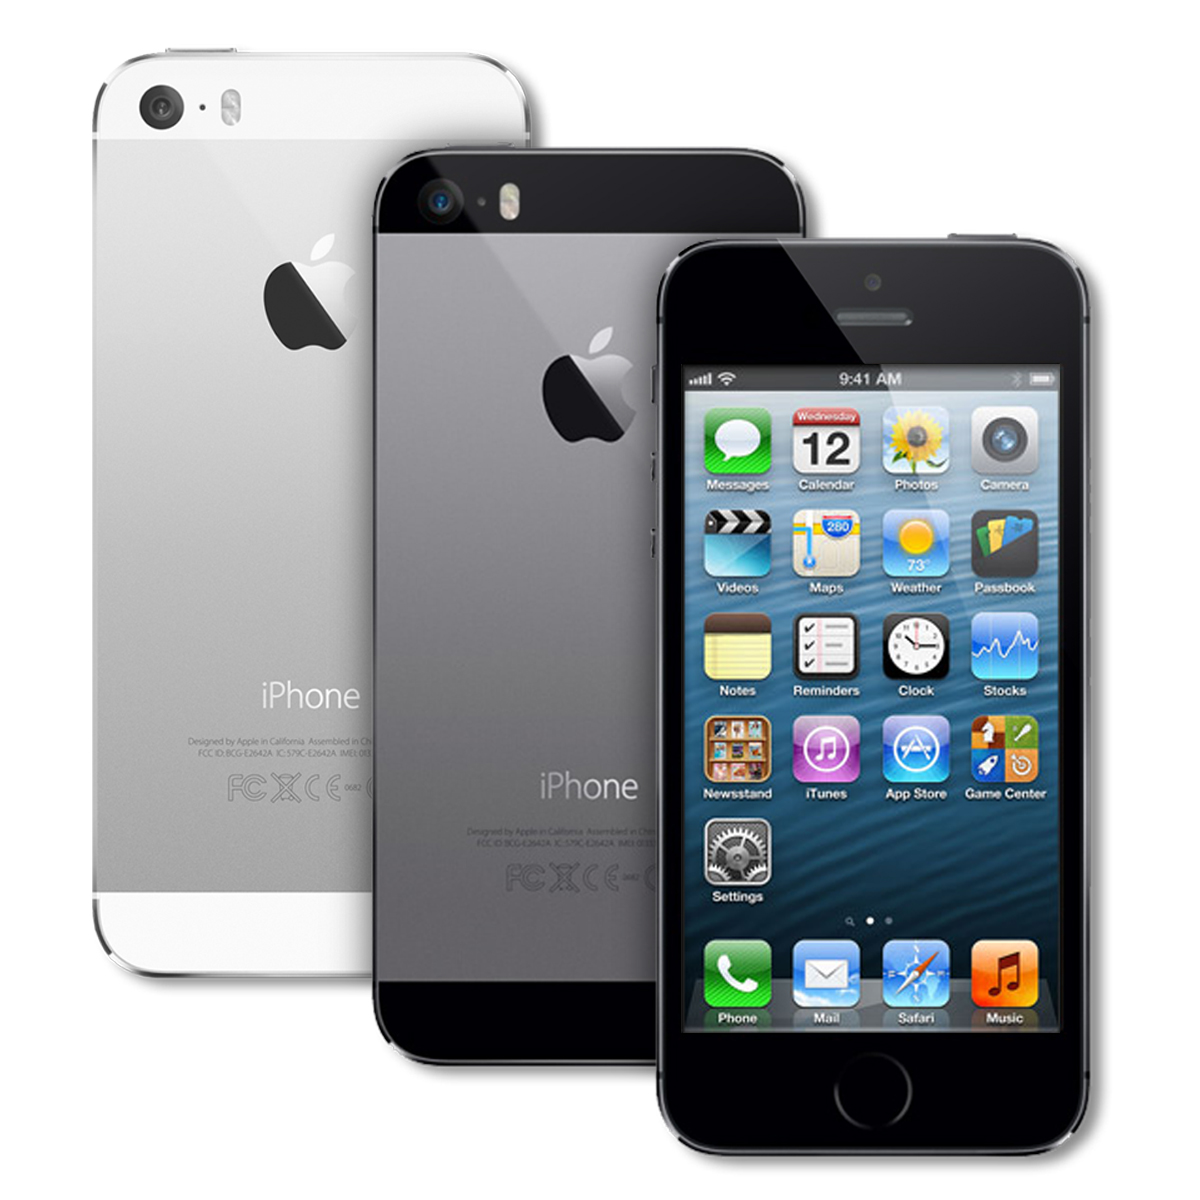 iphone 5 refurbished unlocked apple iphone 5s 16gb certified refurbished factory 5576